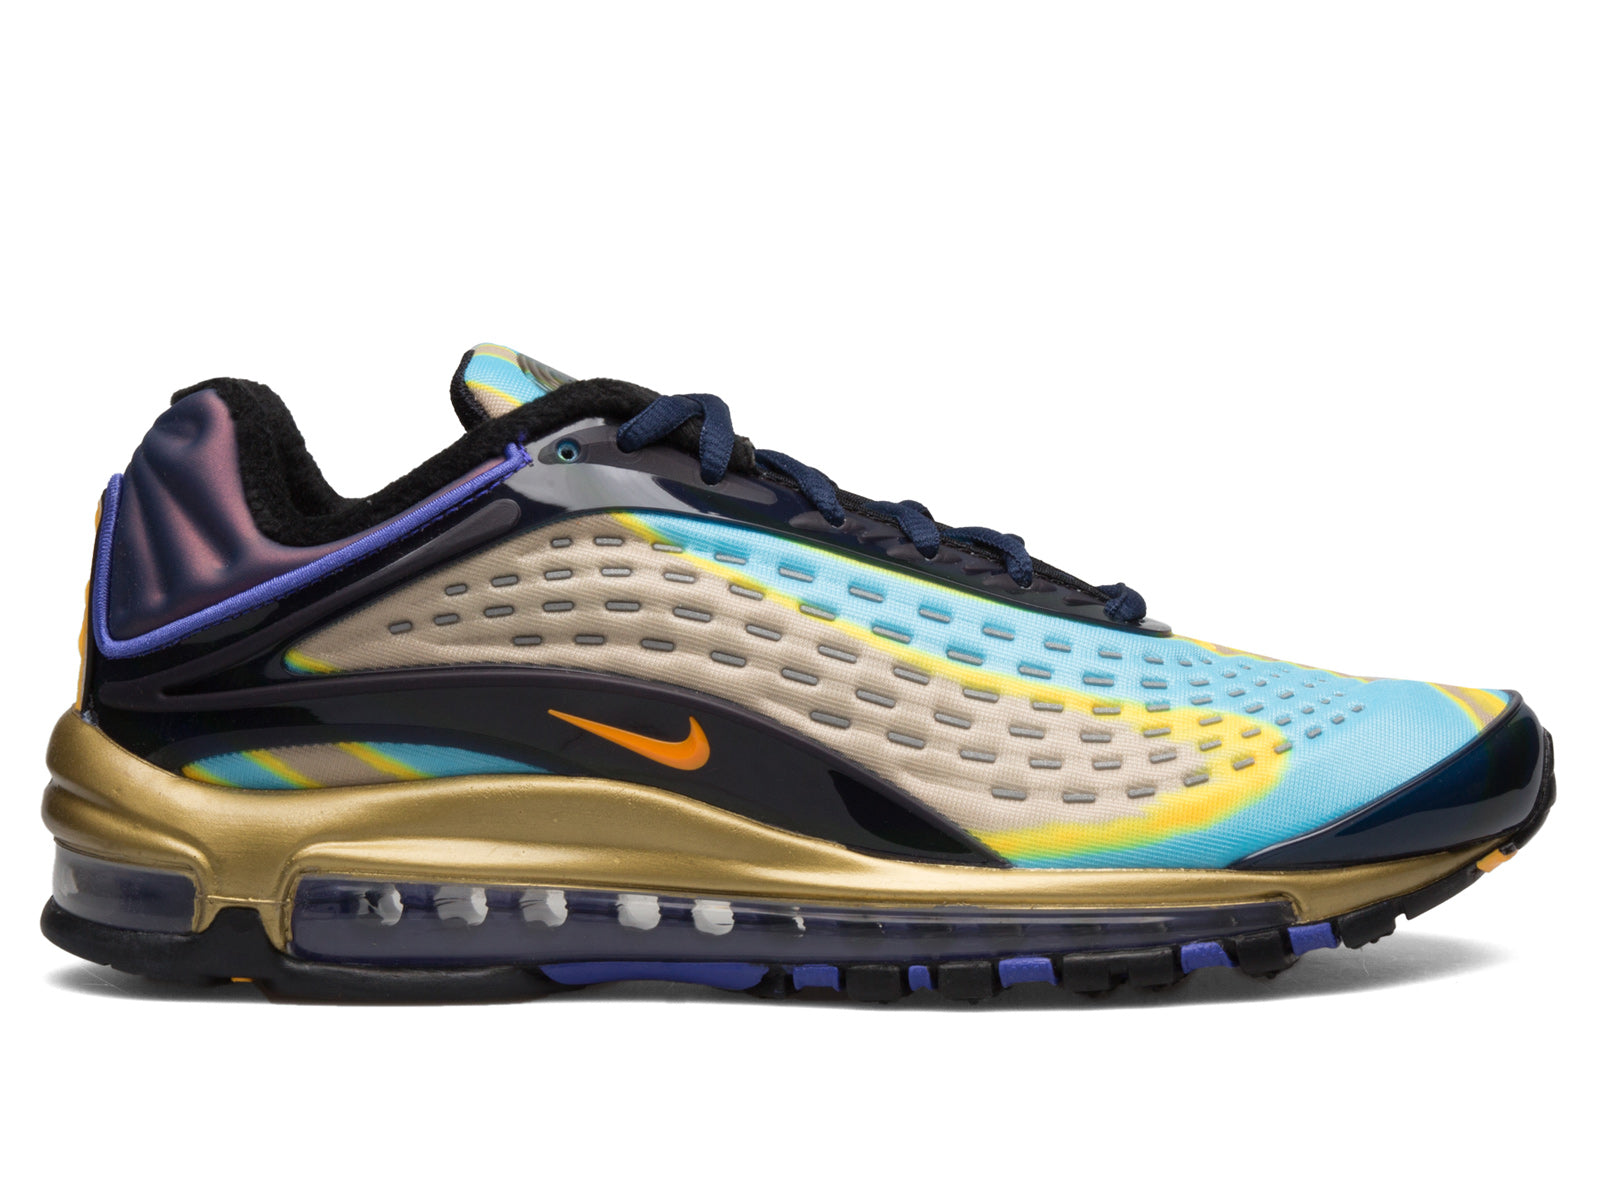 98319eb47a1 Additional details seen include Royal Purple and Gold accents on the heel